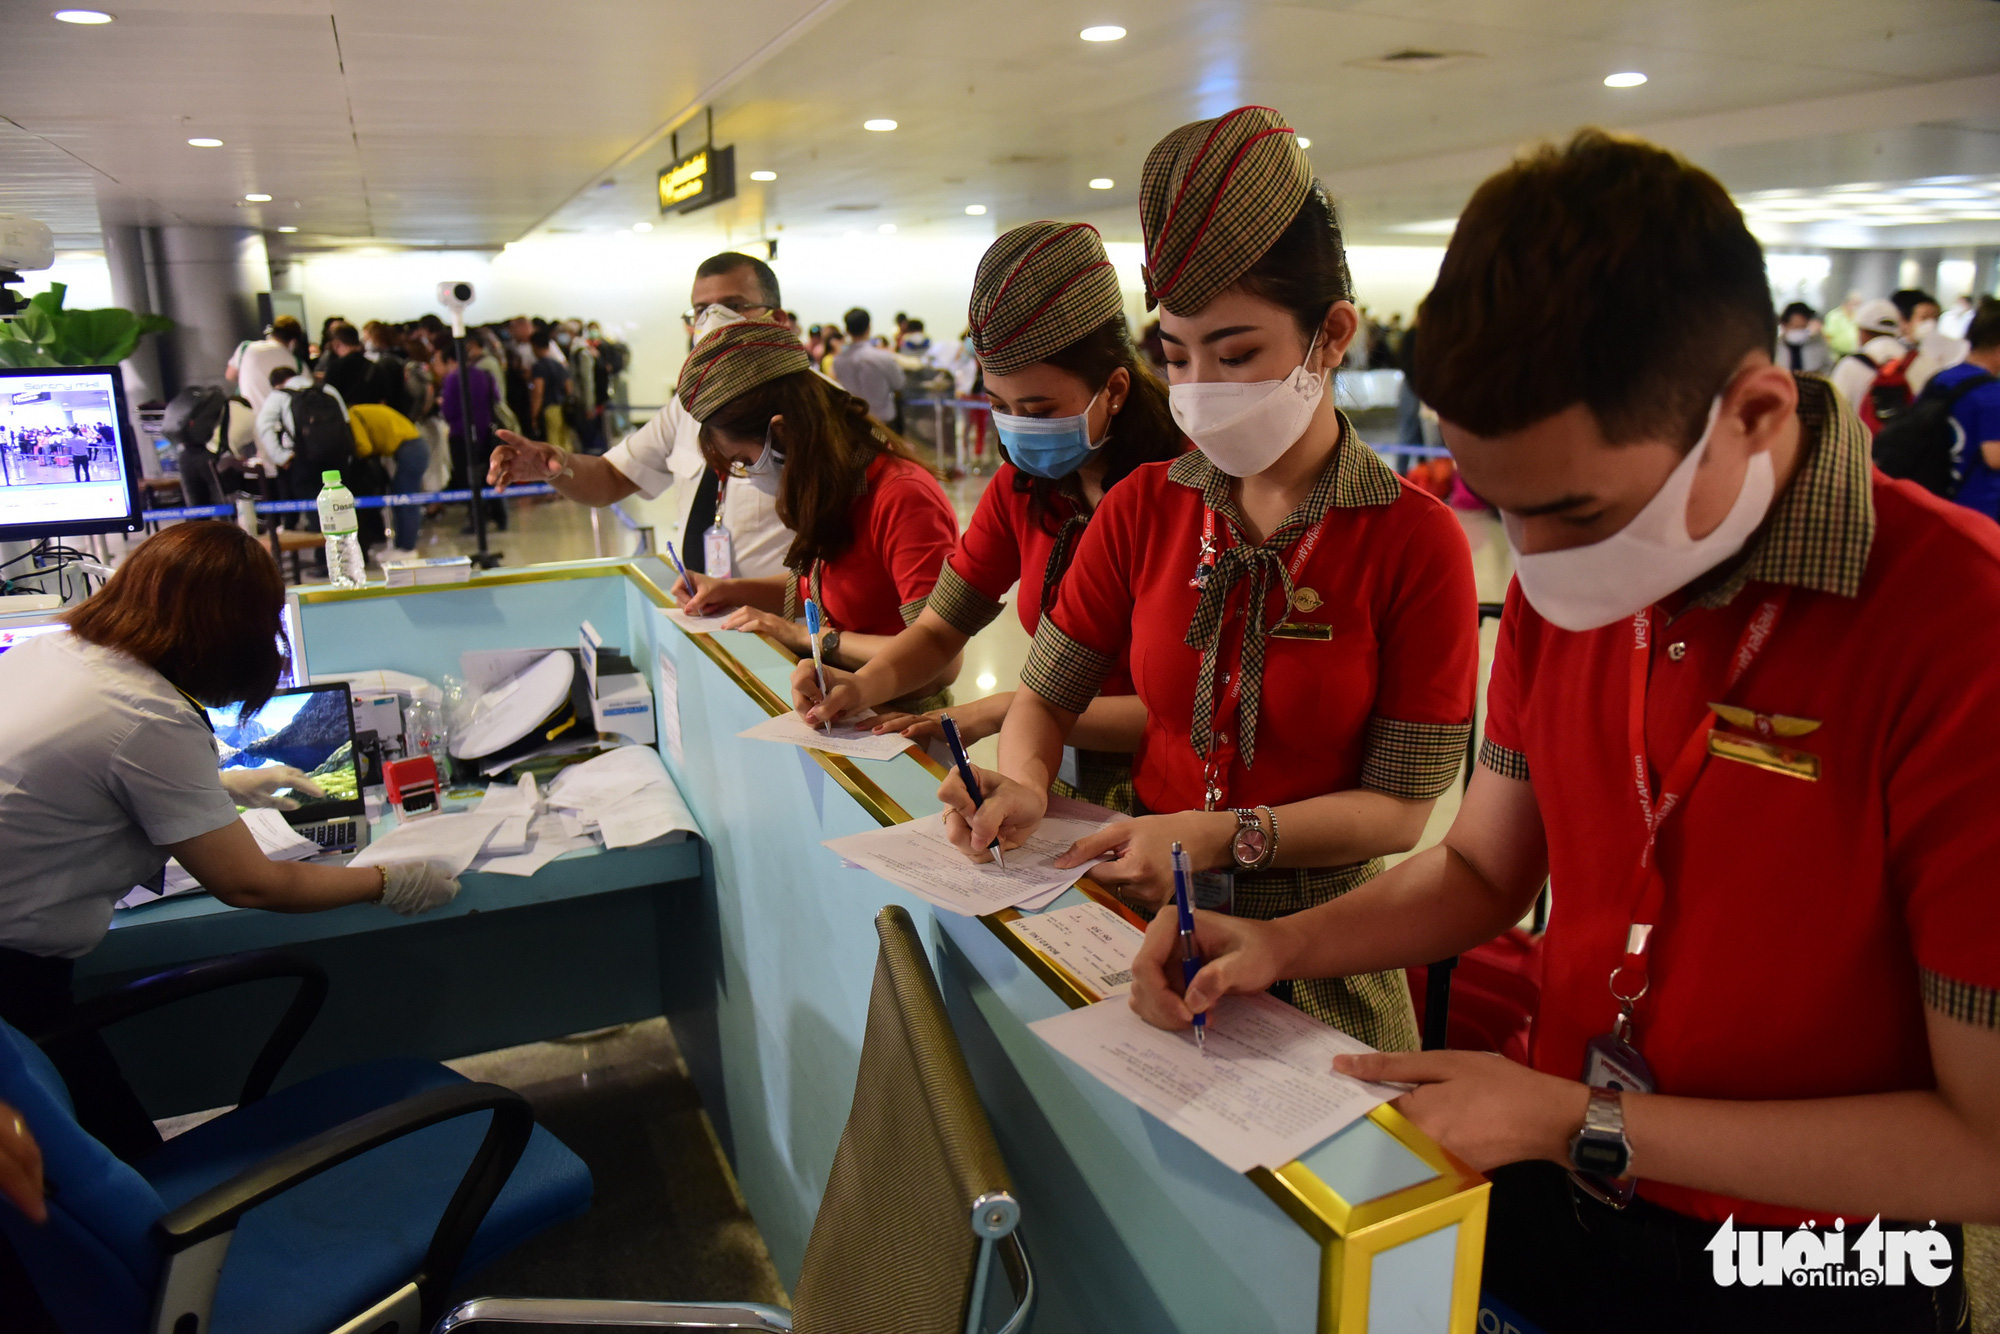 Health declaration requirement leads to endless lines at Ho Chi Minh City airport